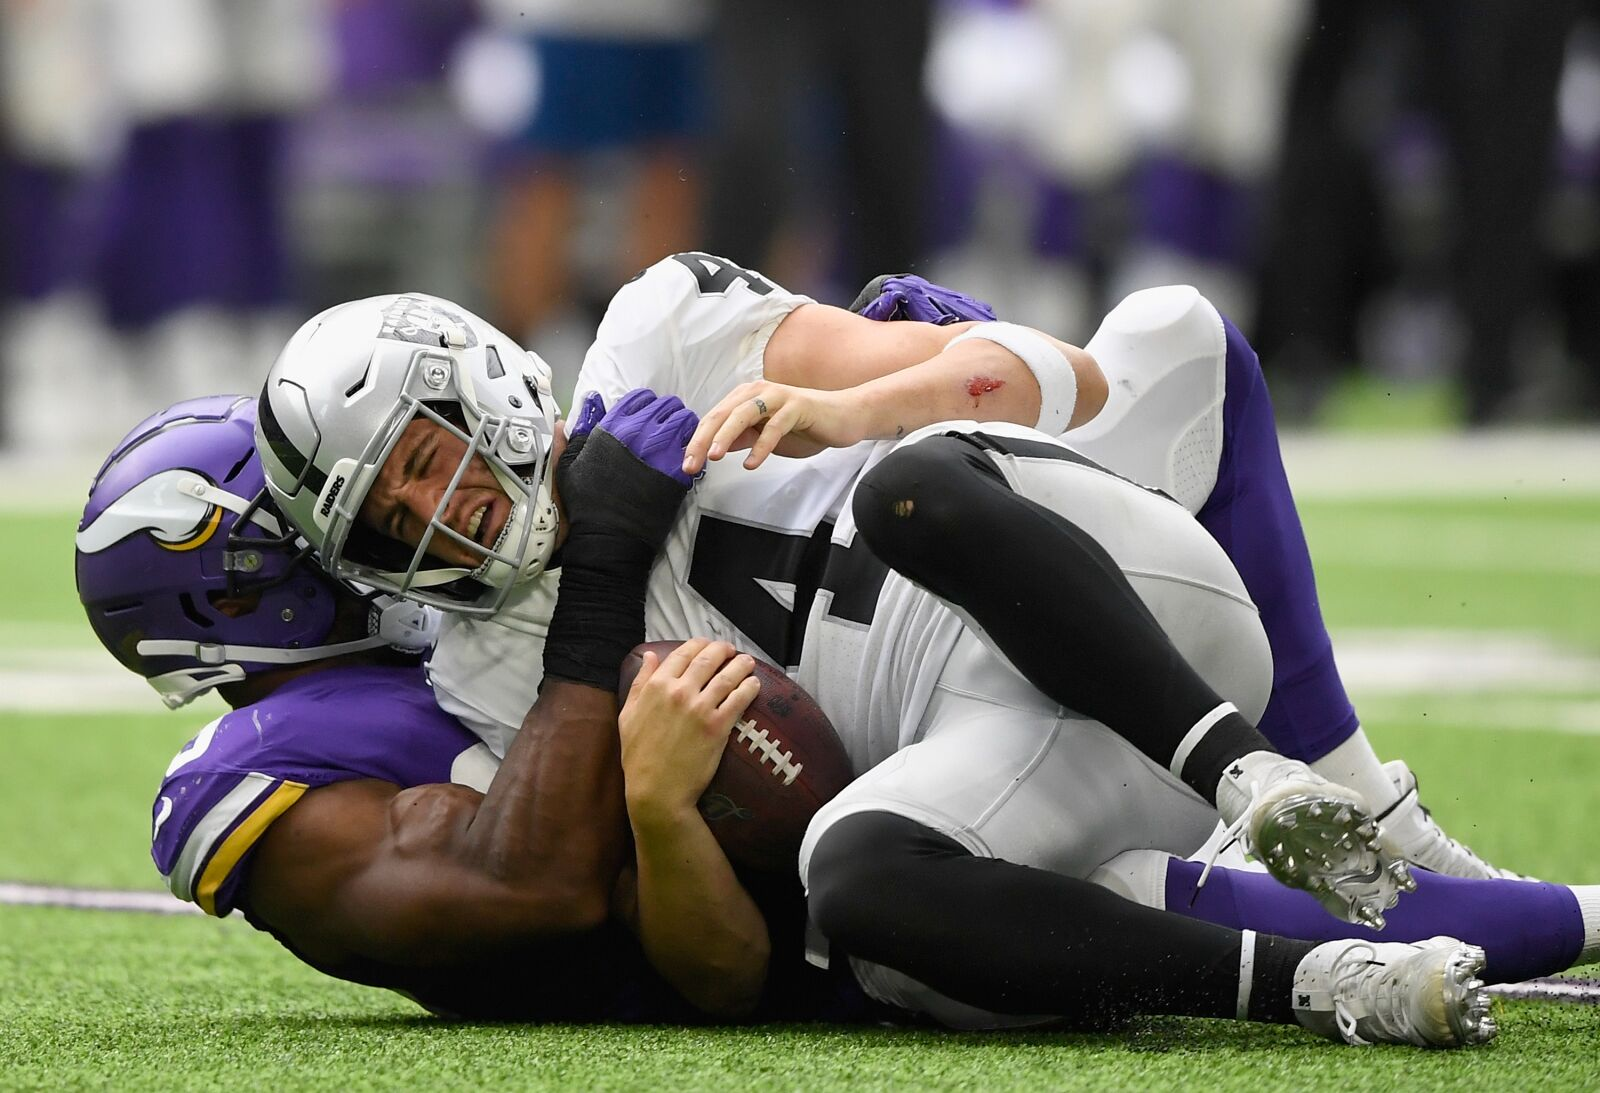 Oakland Raiders Week 3 Review: 3 stars and 3 duds